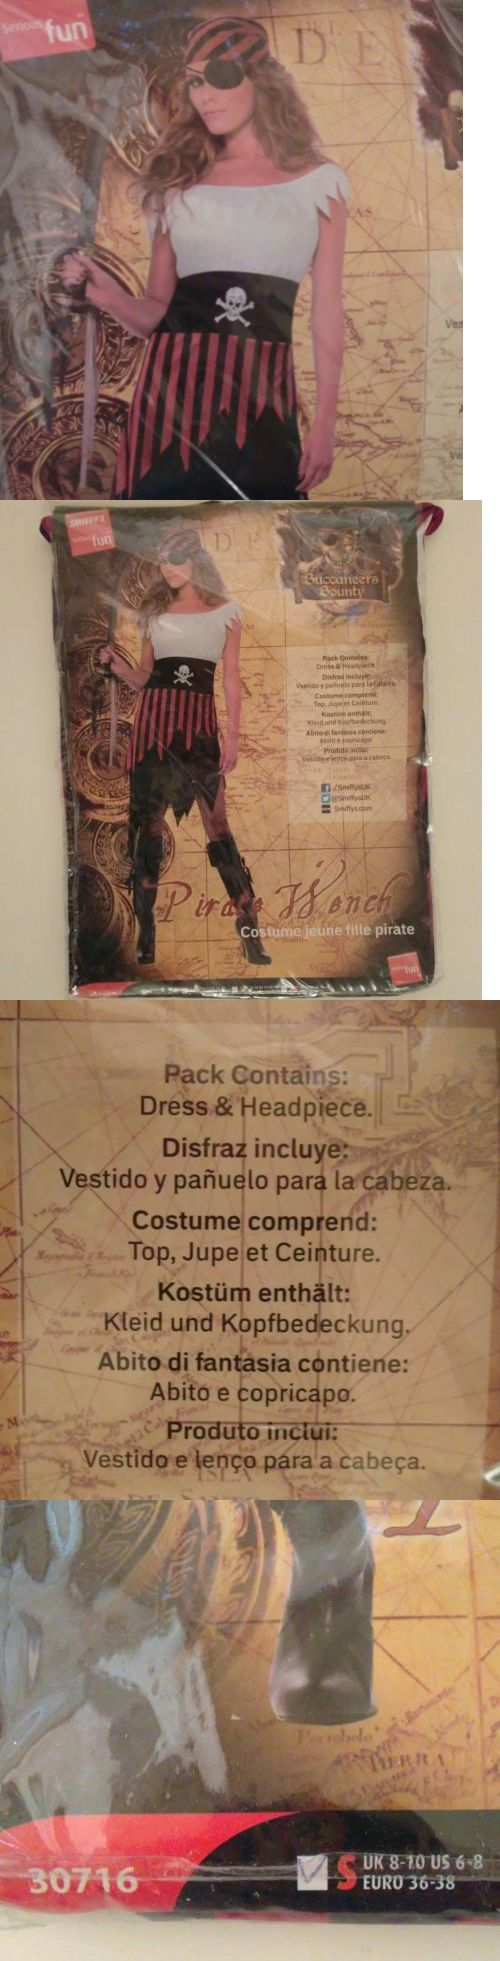 Women Costumes: Pirate Wench Costume Includes Dress And Headpiece Smiffy S New Womens Sz Small -> BUY IT NOW ONLY: $15.71 on eBay!